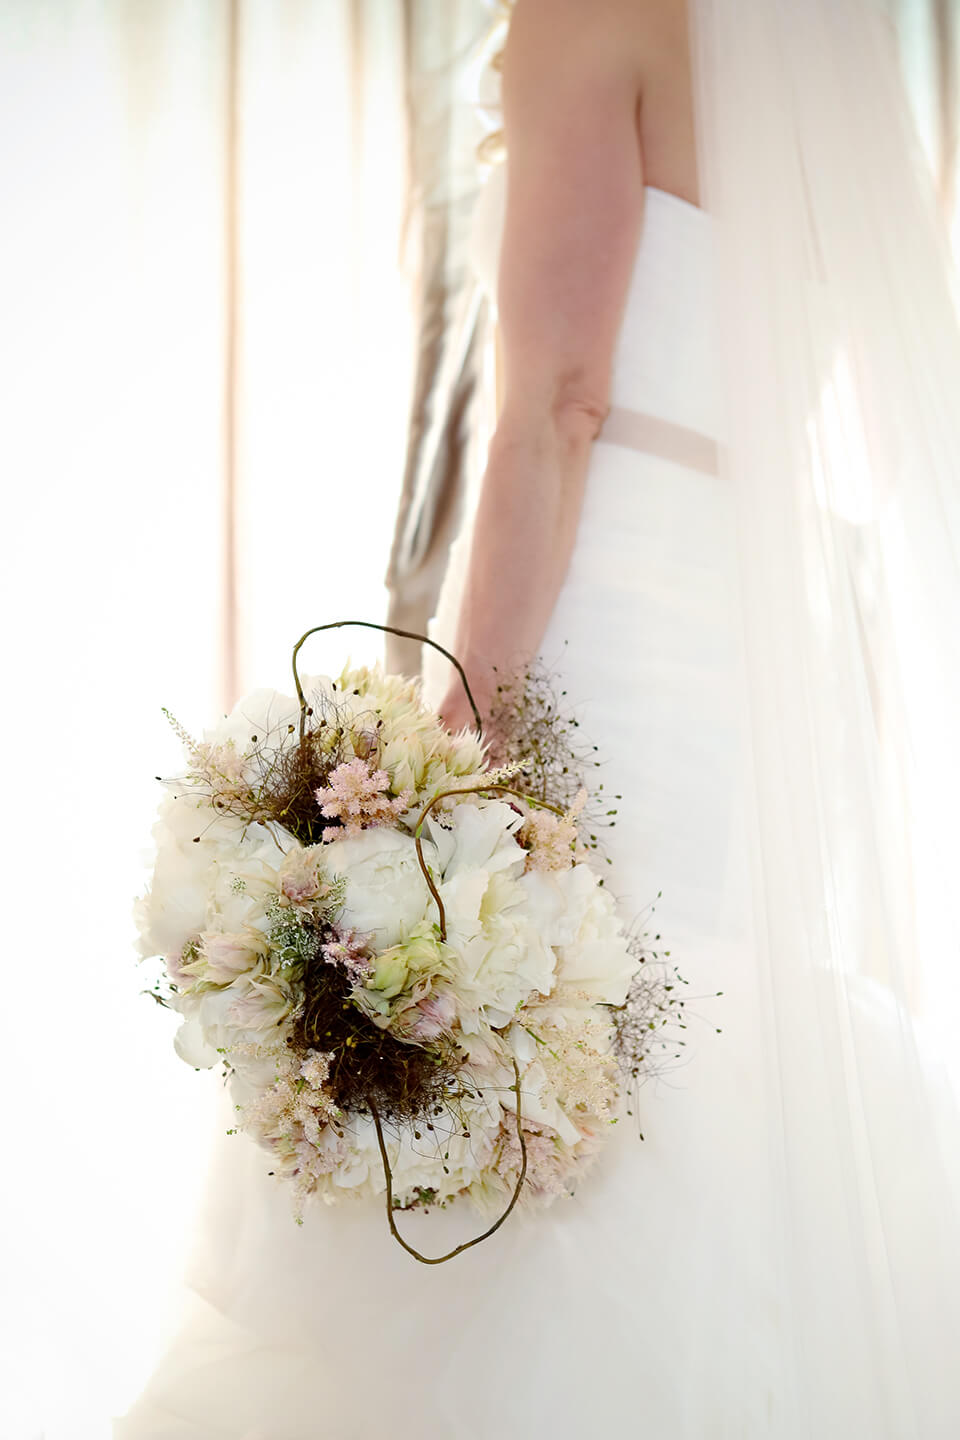 Bride with bouquet.